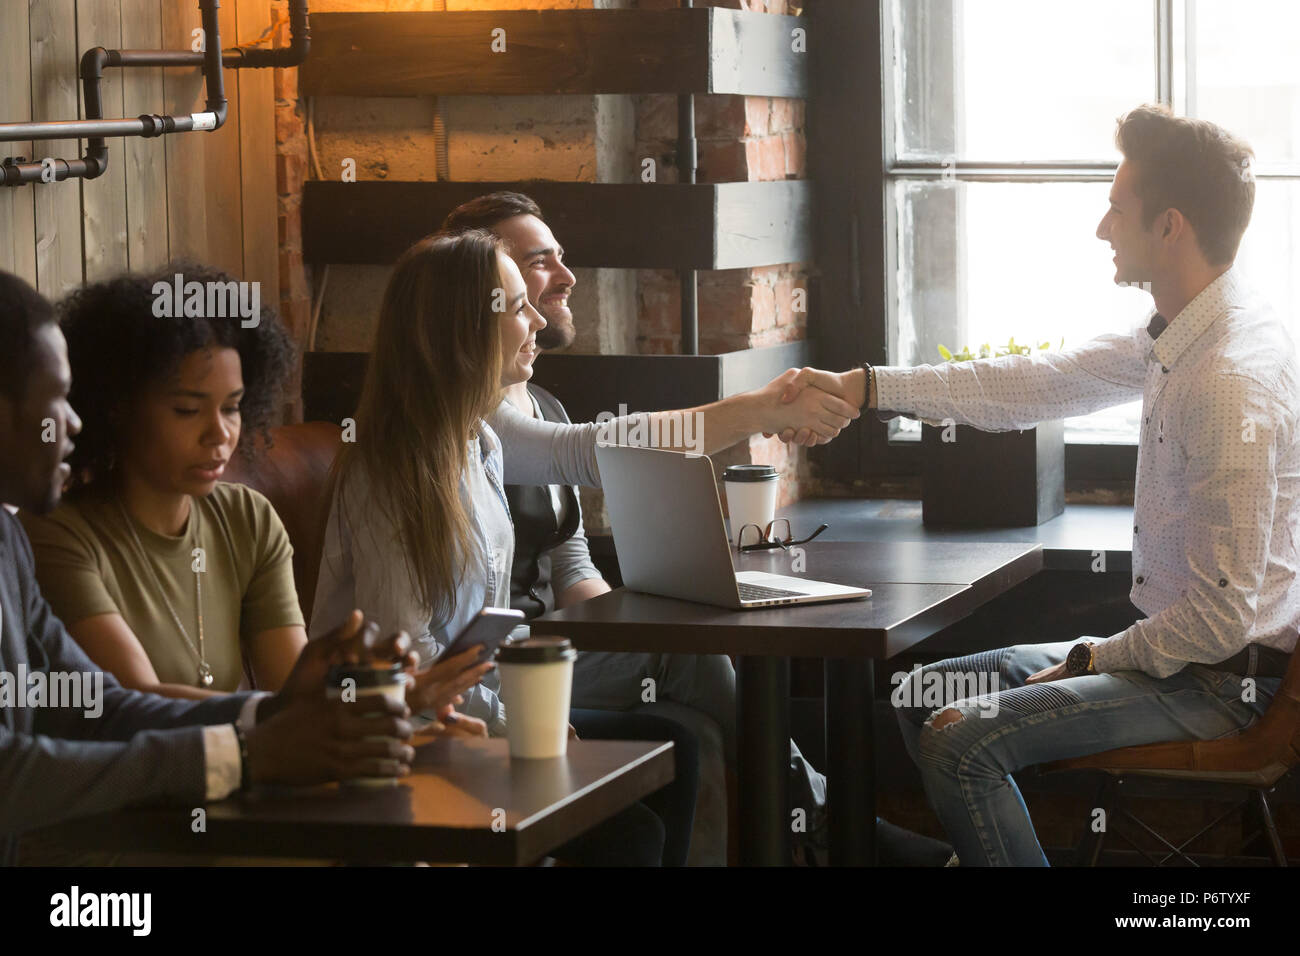 Smiling male broker greeting customers with handshake at cafe me - Stock Image